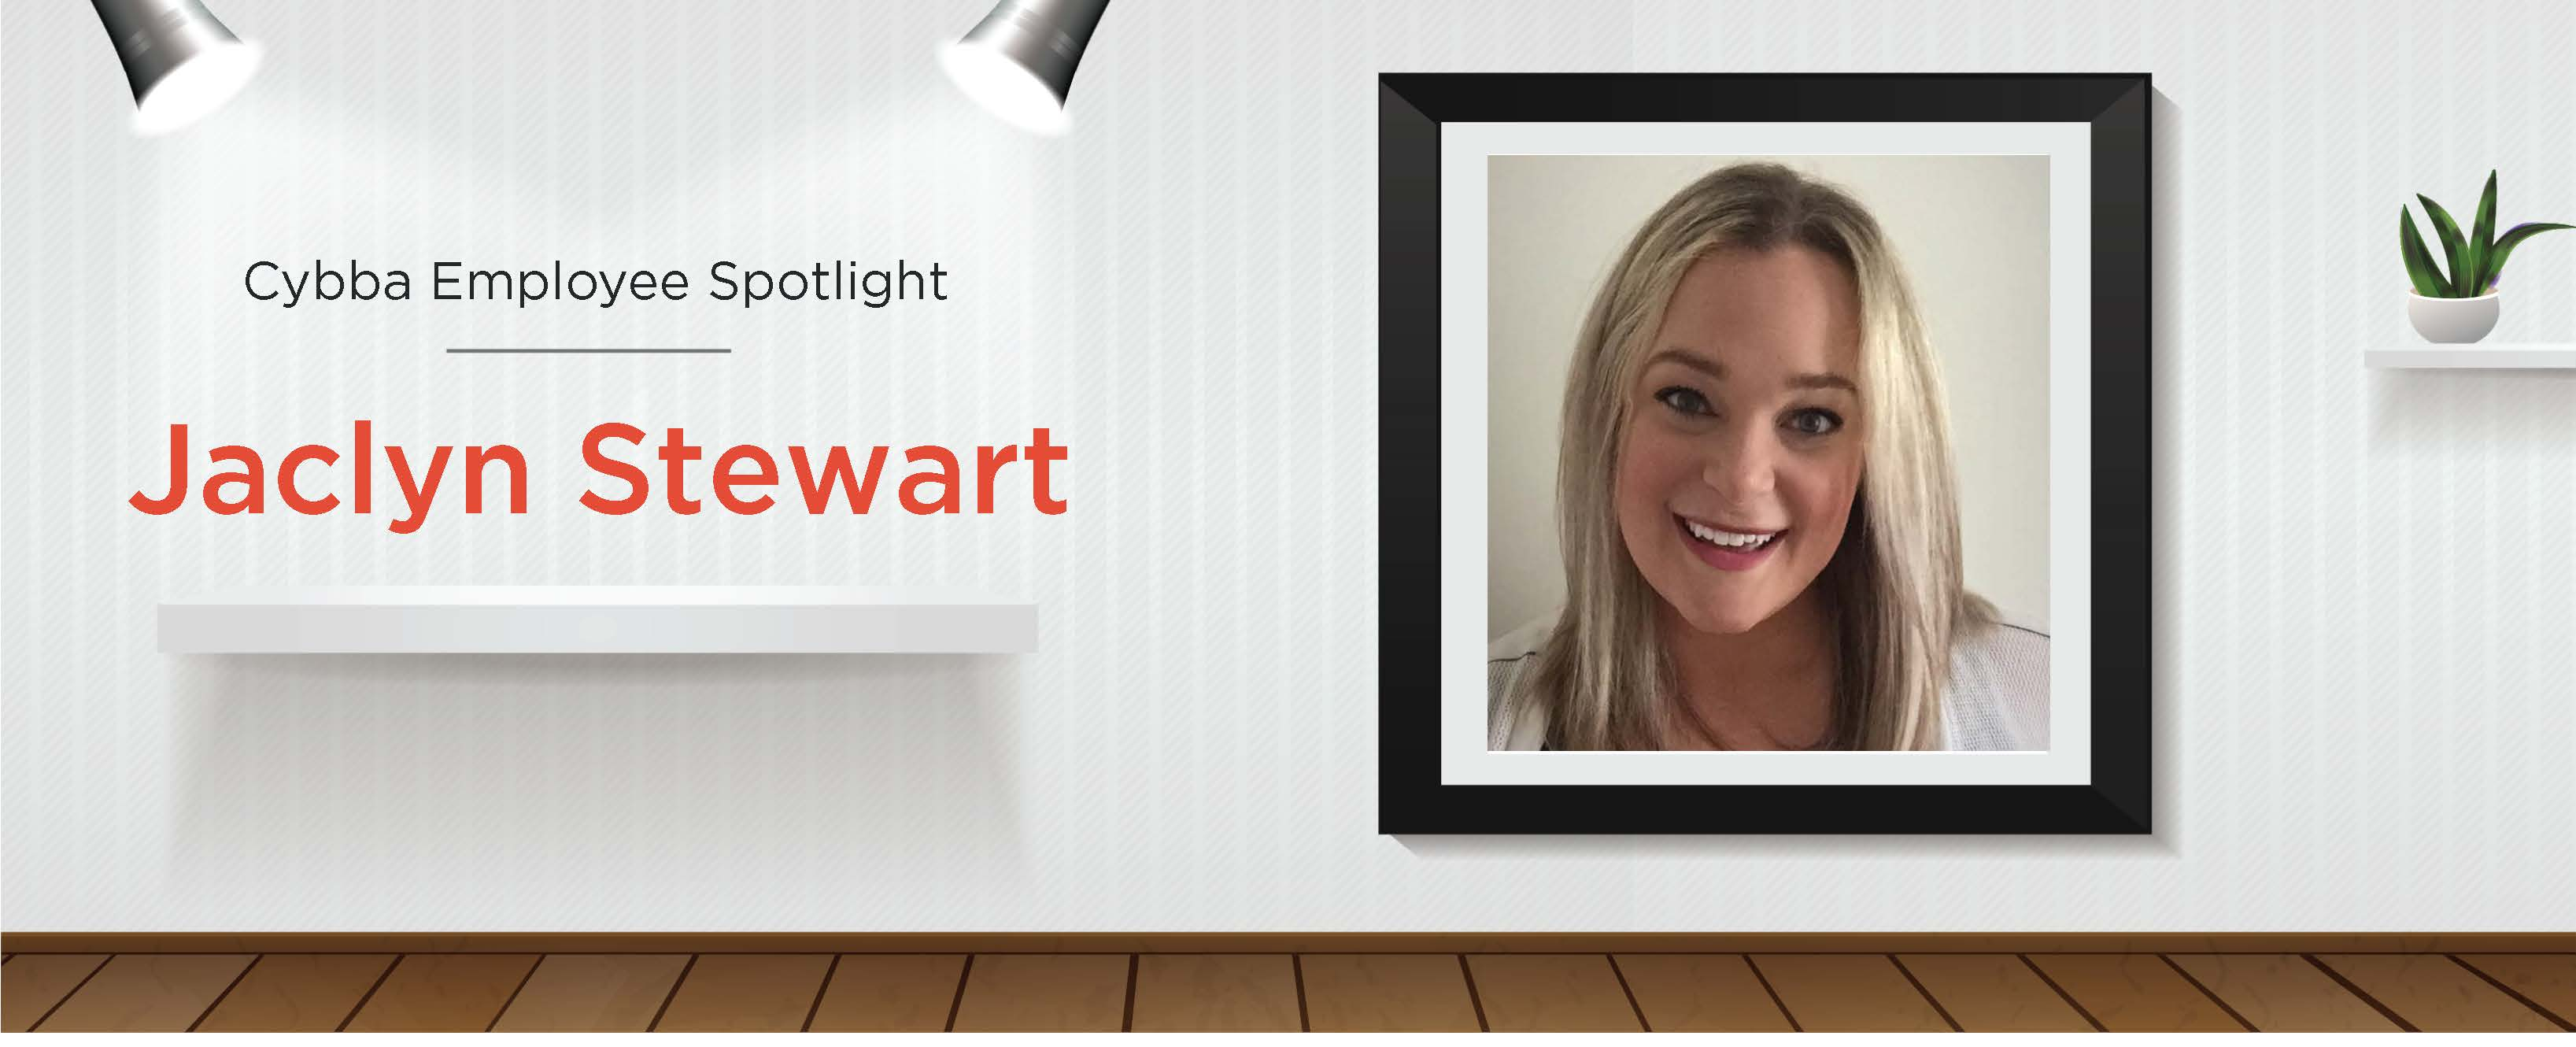 EmployeeSpotlight_flattened-Jaclyn